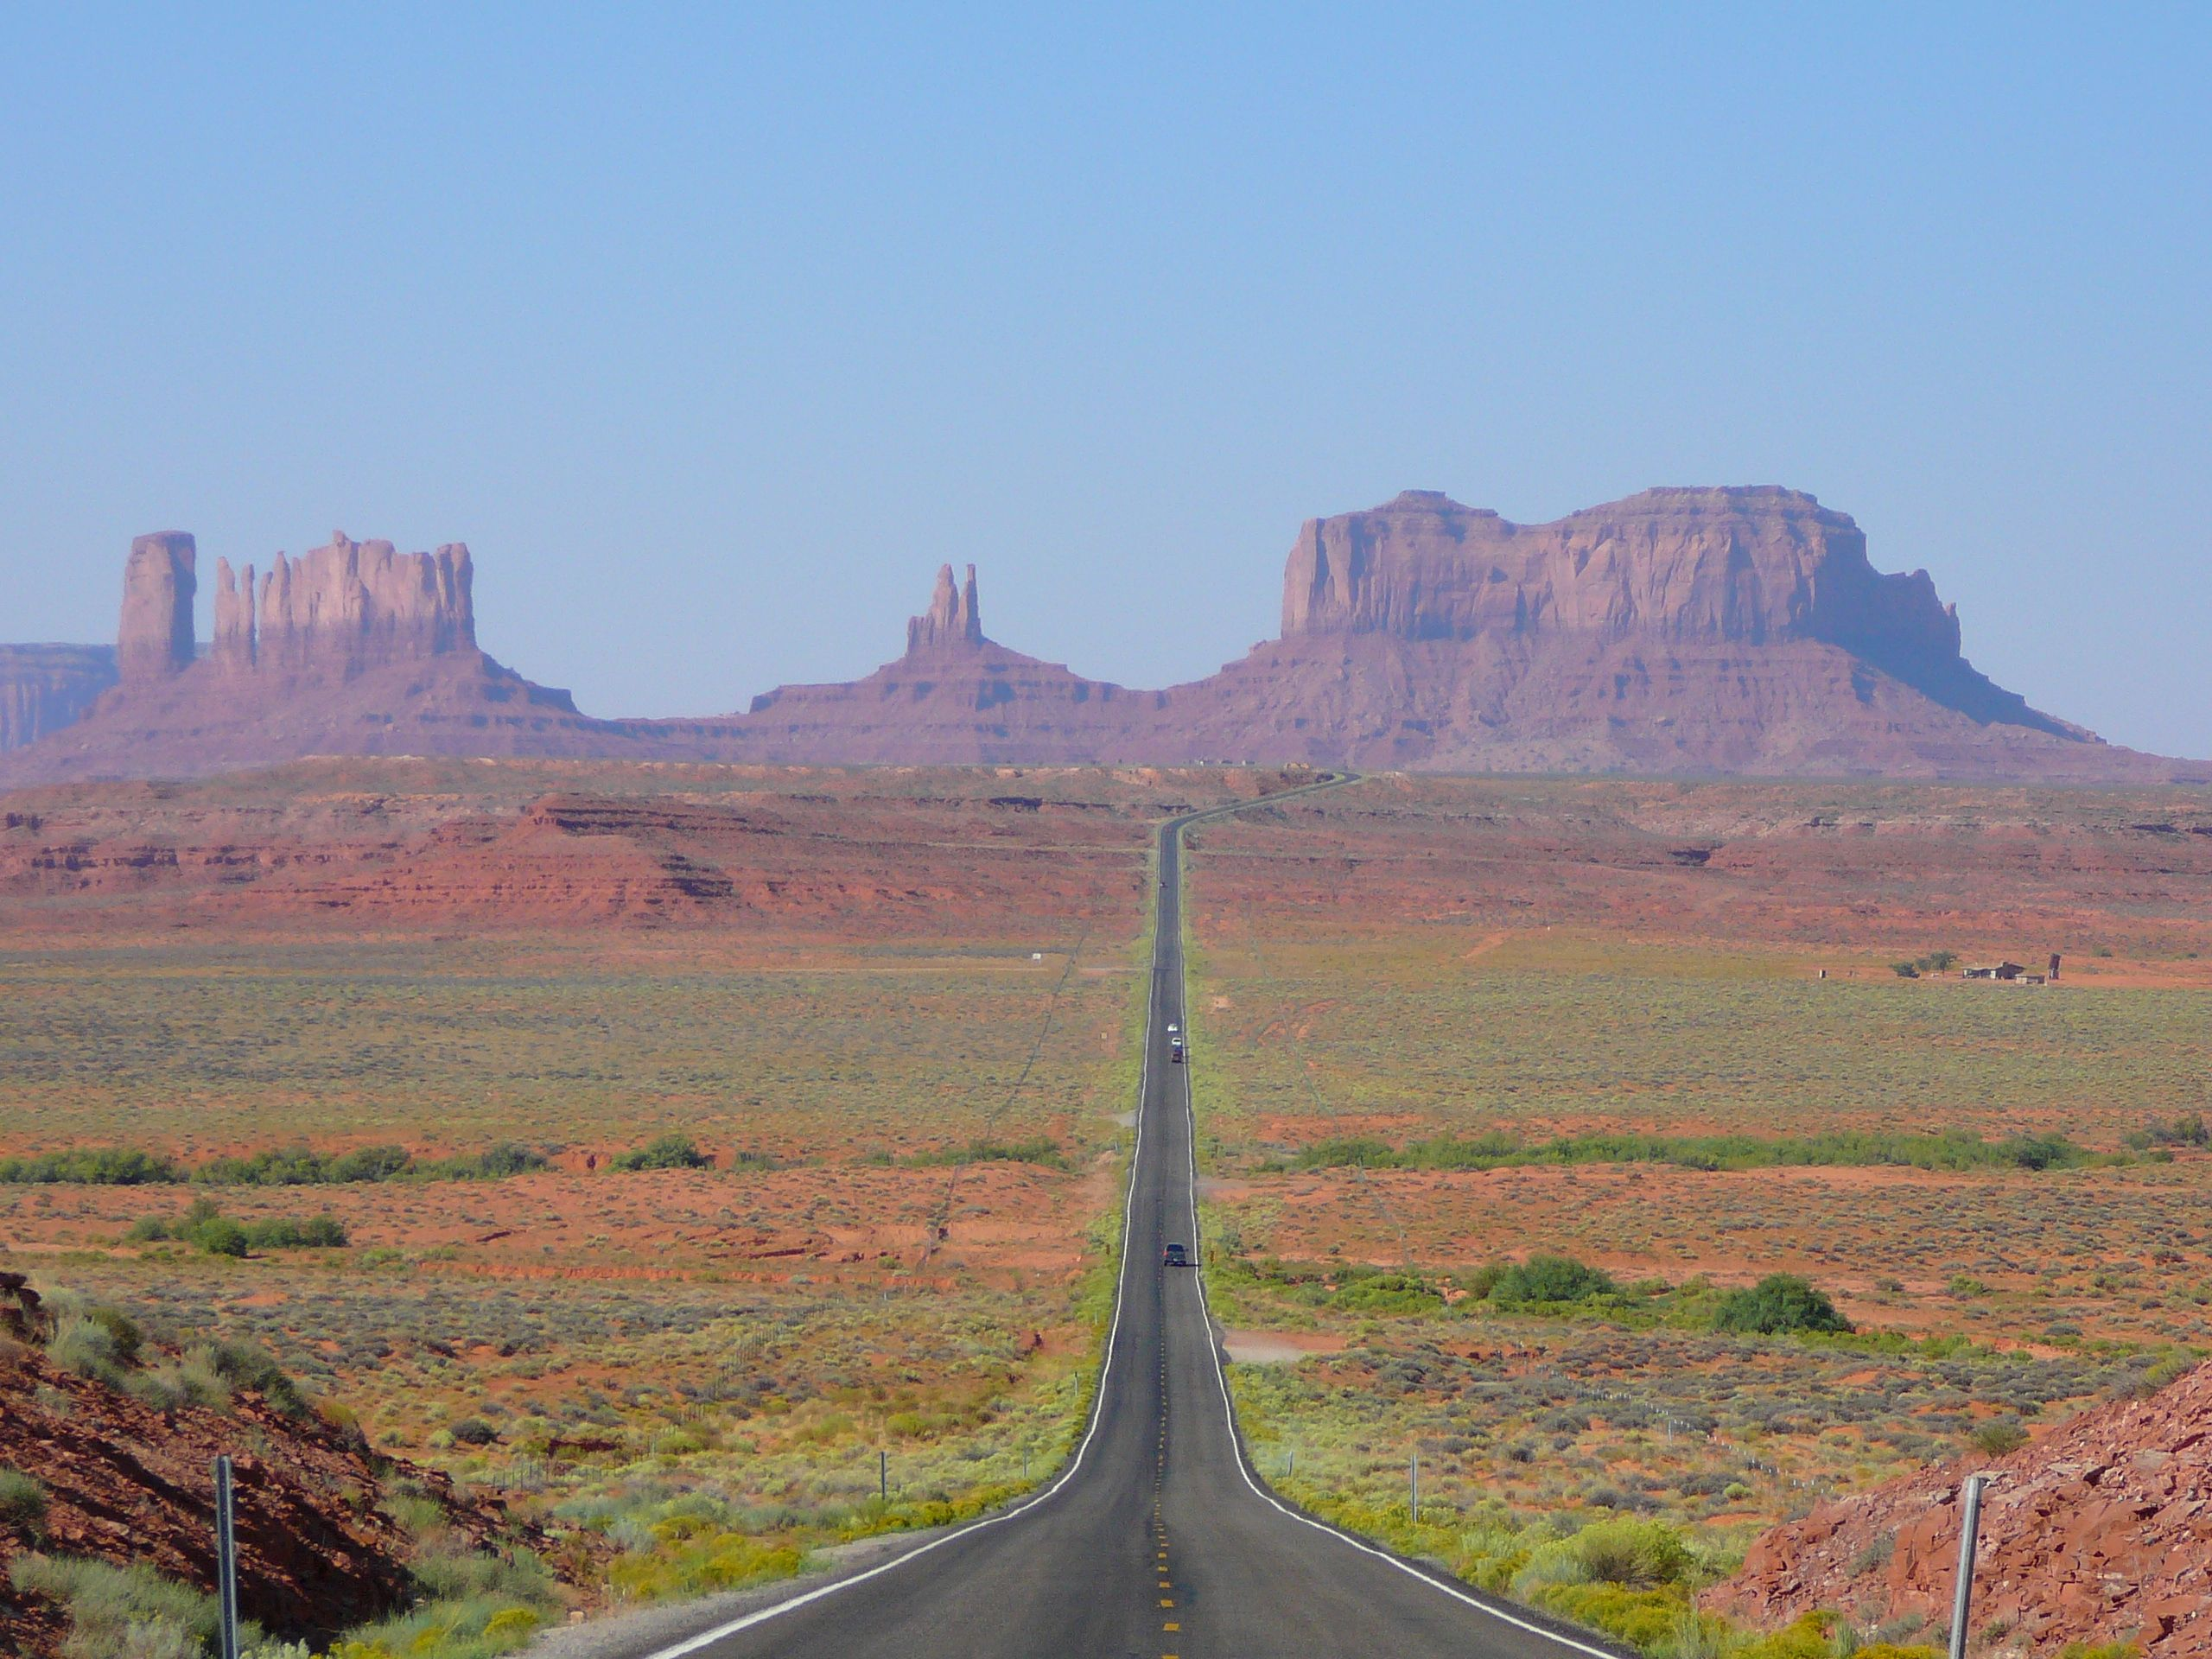 ArizonaUtah Monument Valley is a region